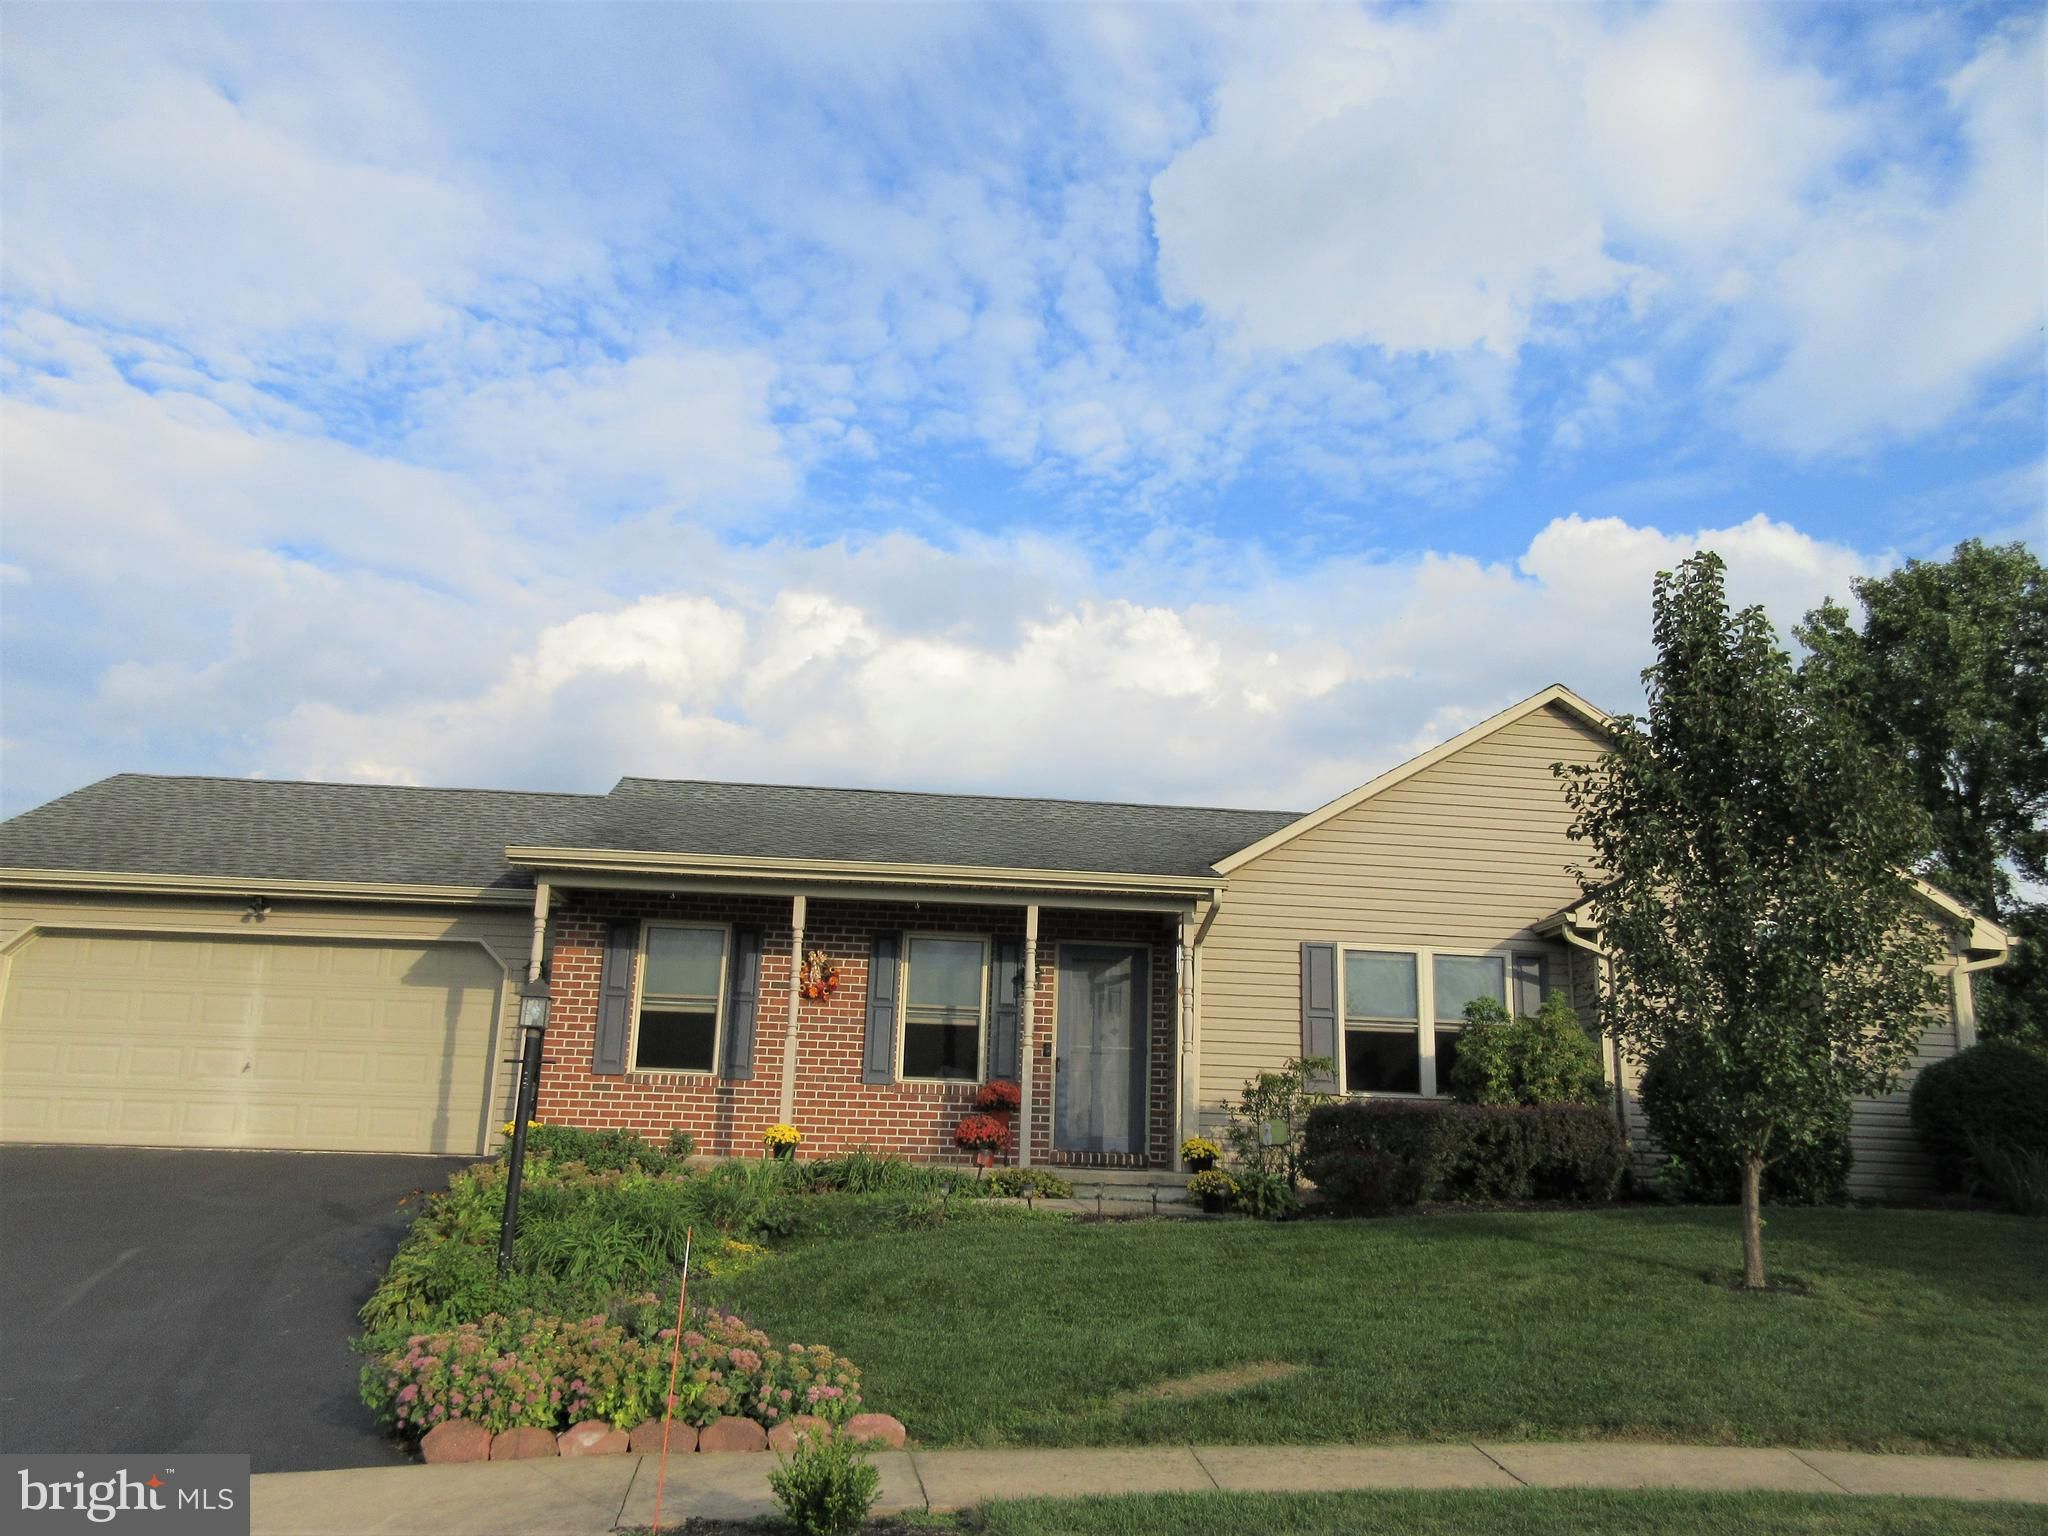 Don't miss this well maintained one story with 3 bedrooms, 2 full baths, 2 car garage and basement. Come and visit the beautiful kitchen that features granite countertops, tile backsplash, island, extra cabinets, gas stove, built in microwave and a Pella door with built in blinds. Relax on the spacious deck or covered front porch and enjoy the many flowers. The master suite was recently remodeled and features a master bath with tile floors, a roomy shower with glass doors, huge walk in closet and a convenient laundry area. Washer and dryer are included. There's a cathedral ceiling in bedroom 2. Enjoy the central vacuum with 5 hookups, economical gas heat and cool central air. There is a shed and basement for storage, and the second washer and dryer set is included. Located on a quiet cul de sac just a short walk to the middle school and high school.Showings begin October 5. All offers are due by October 10 and will be presented on October 11